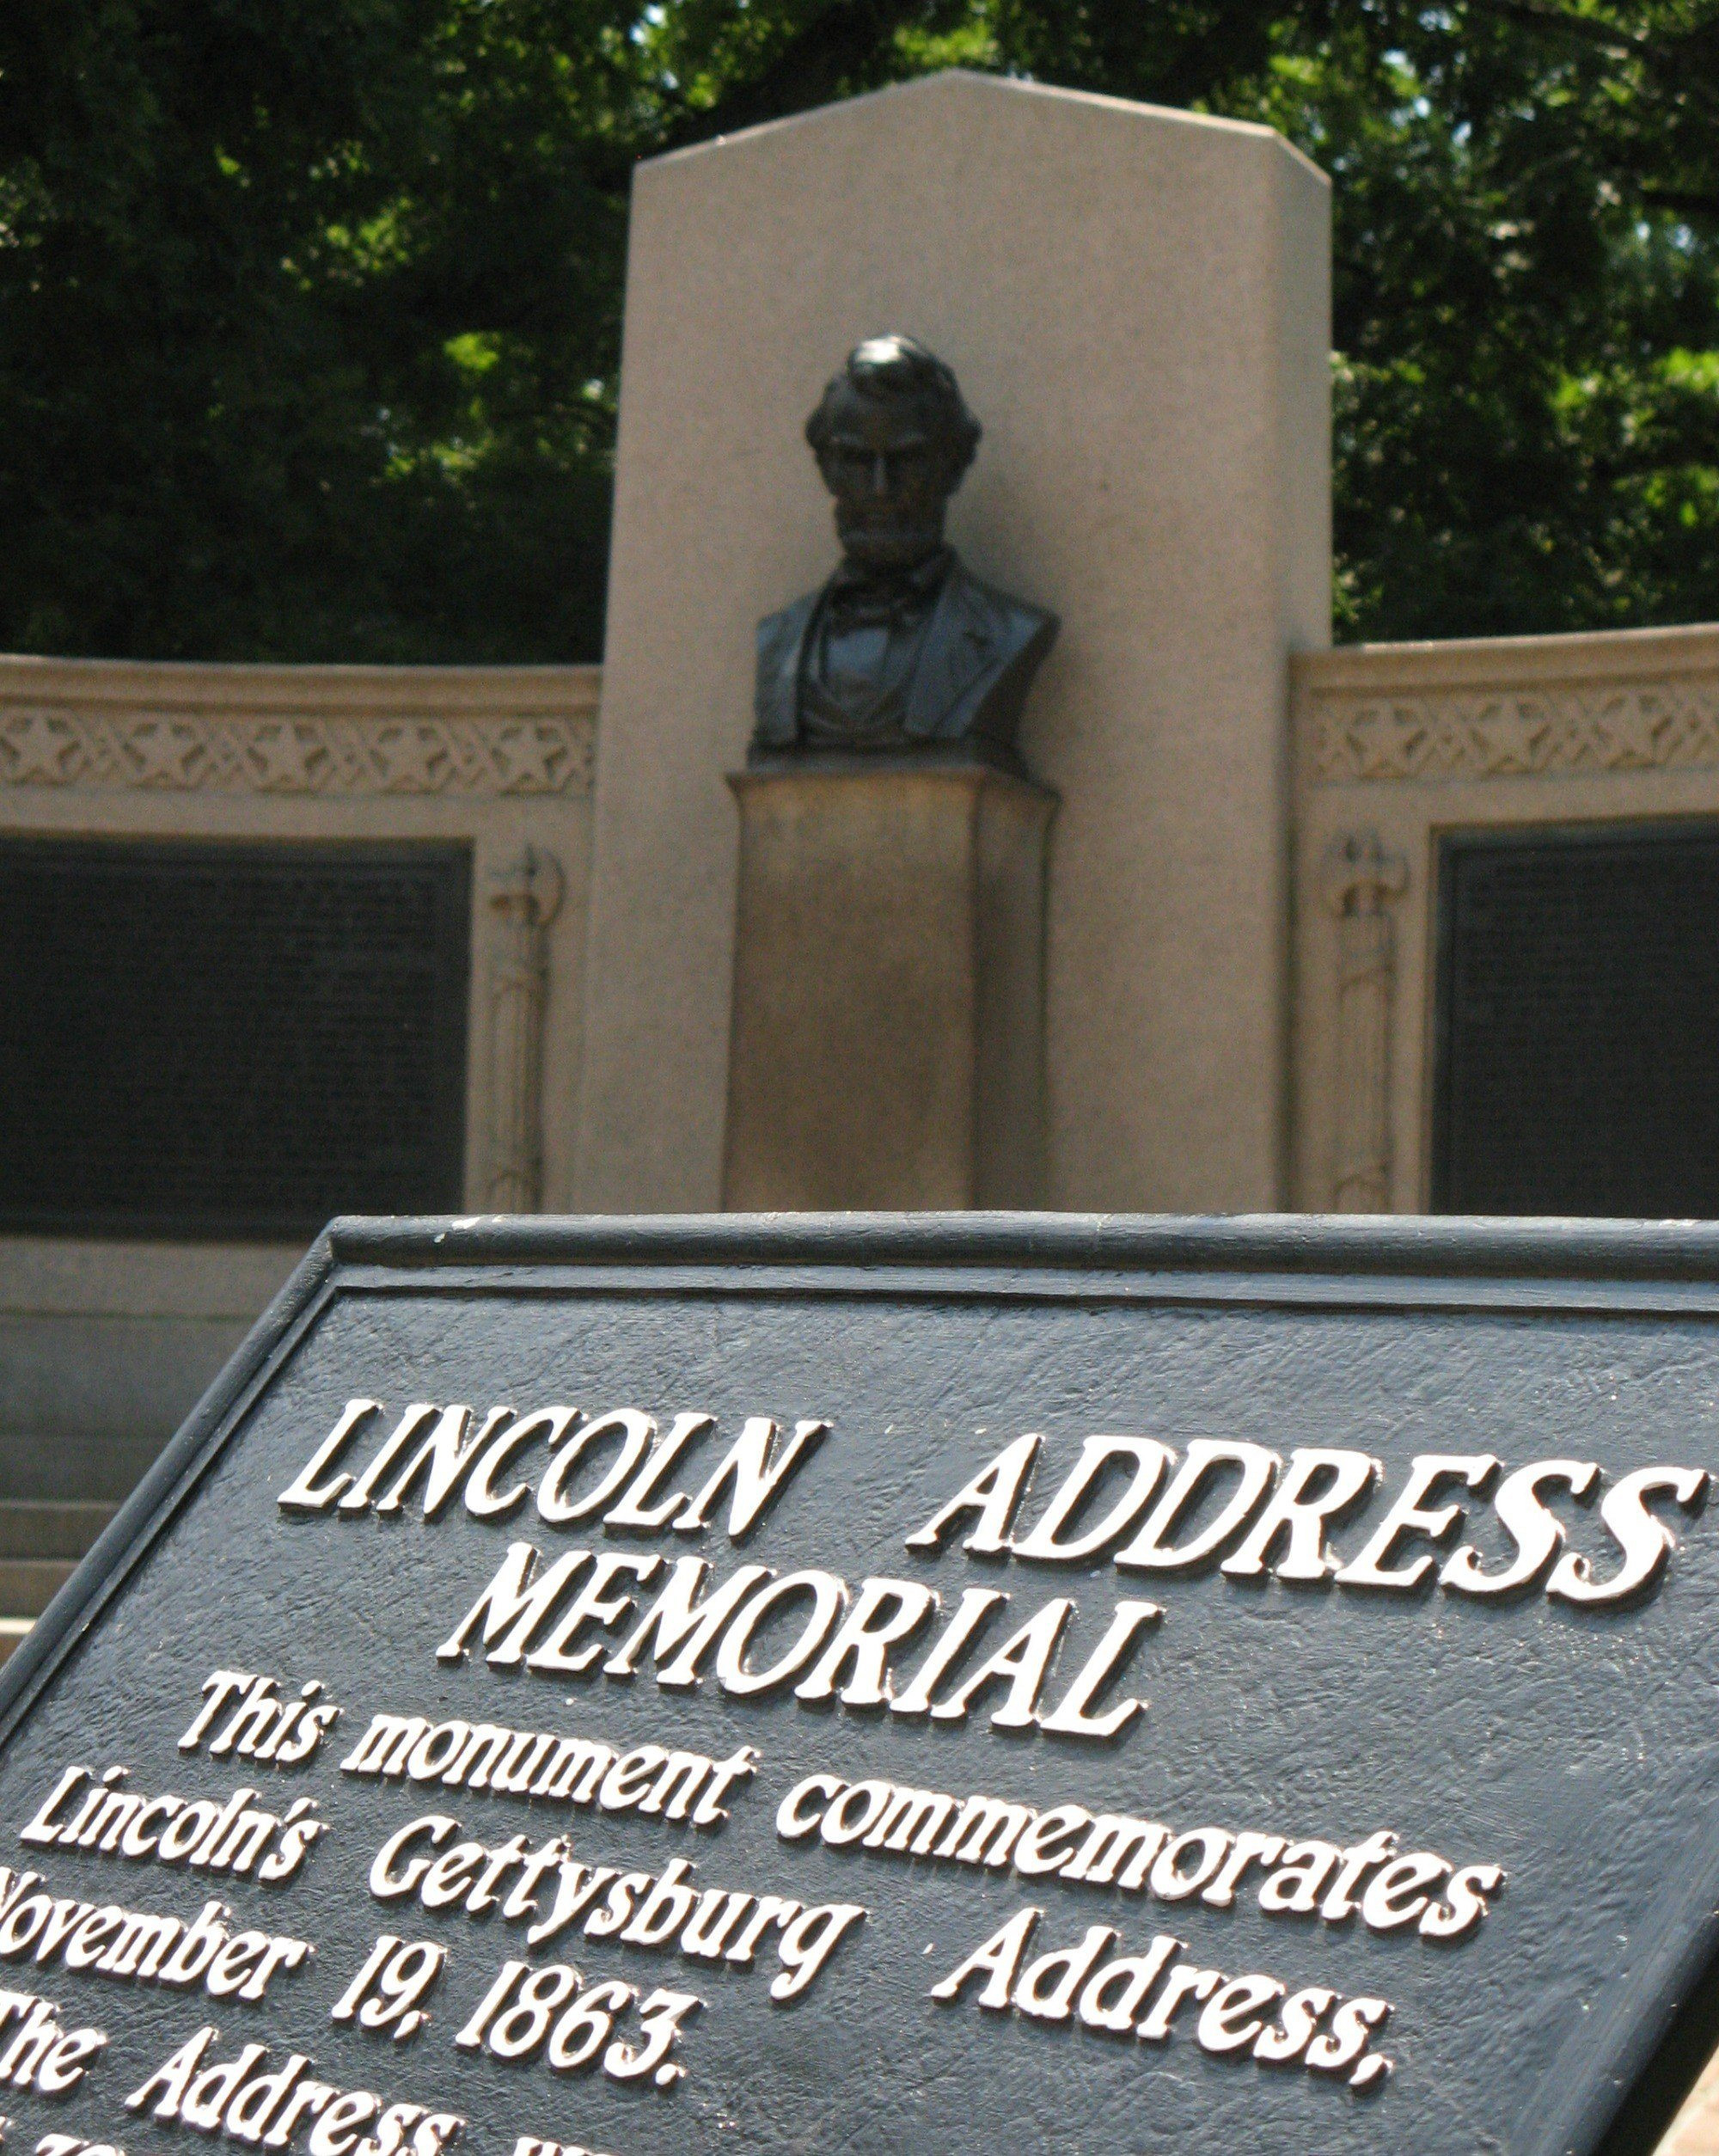 Where Lincoln gave the Gettysburg Address